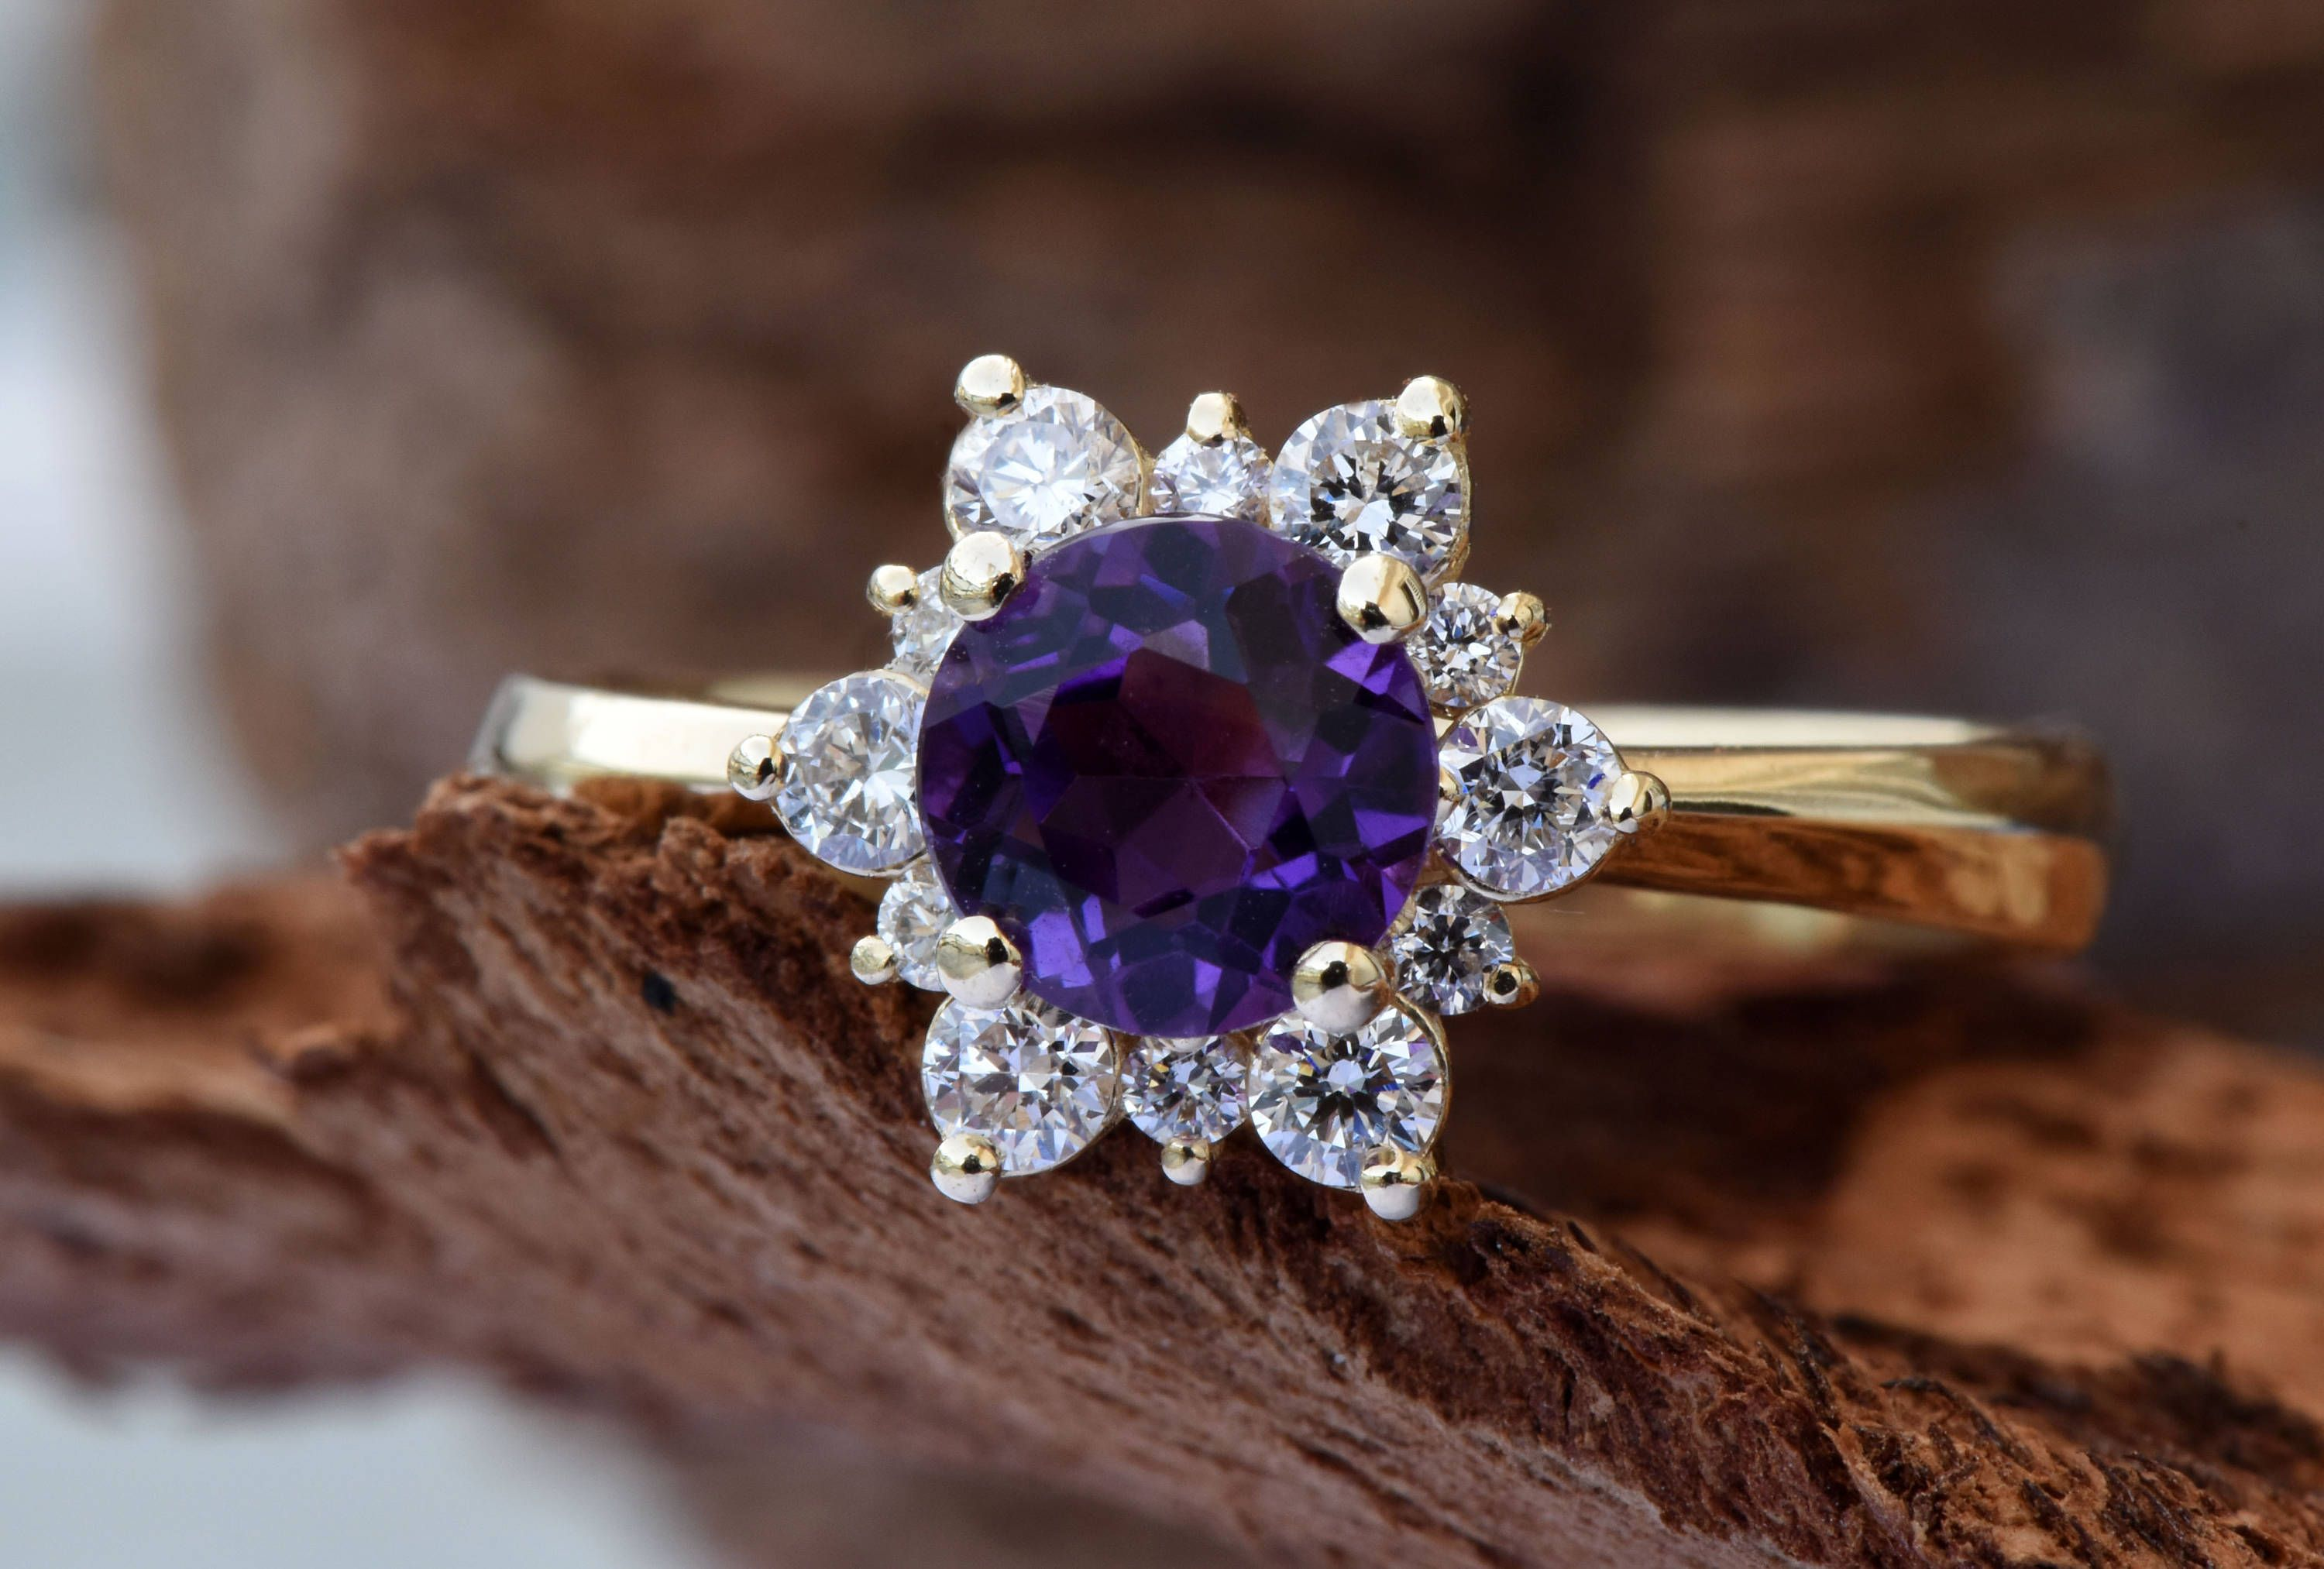 engagement amethist ring amethyst gold women tone jewelry bvlgari piramide s multi rings